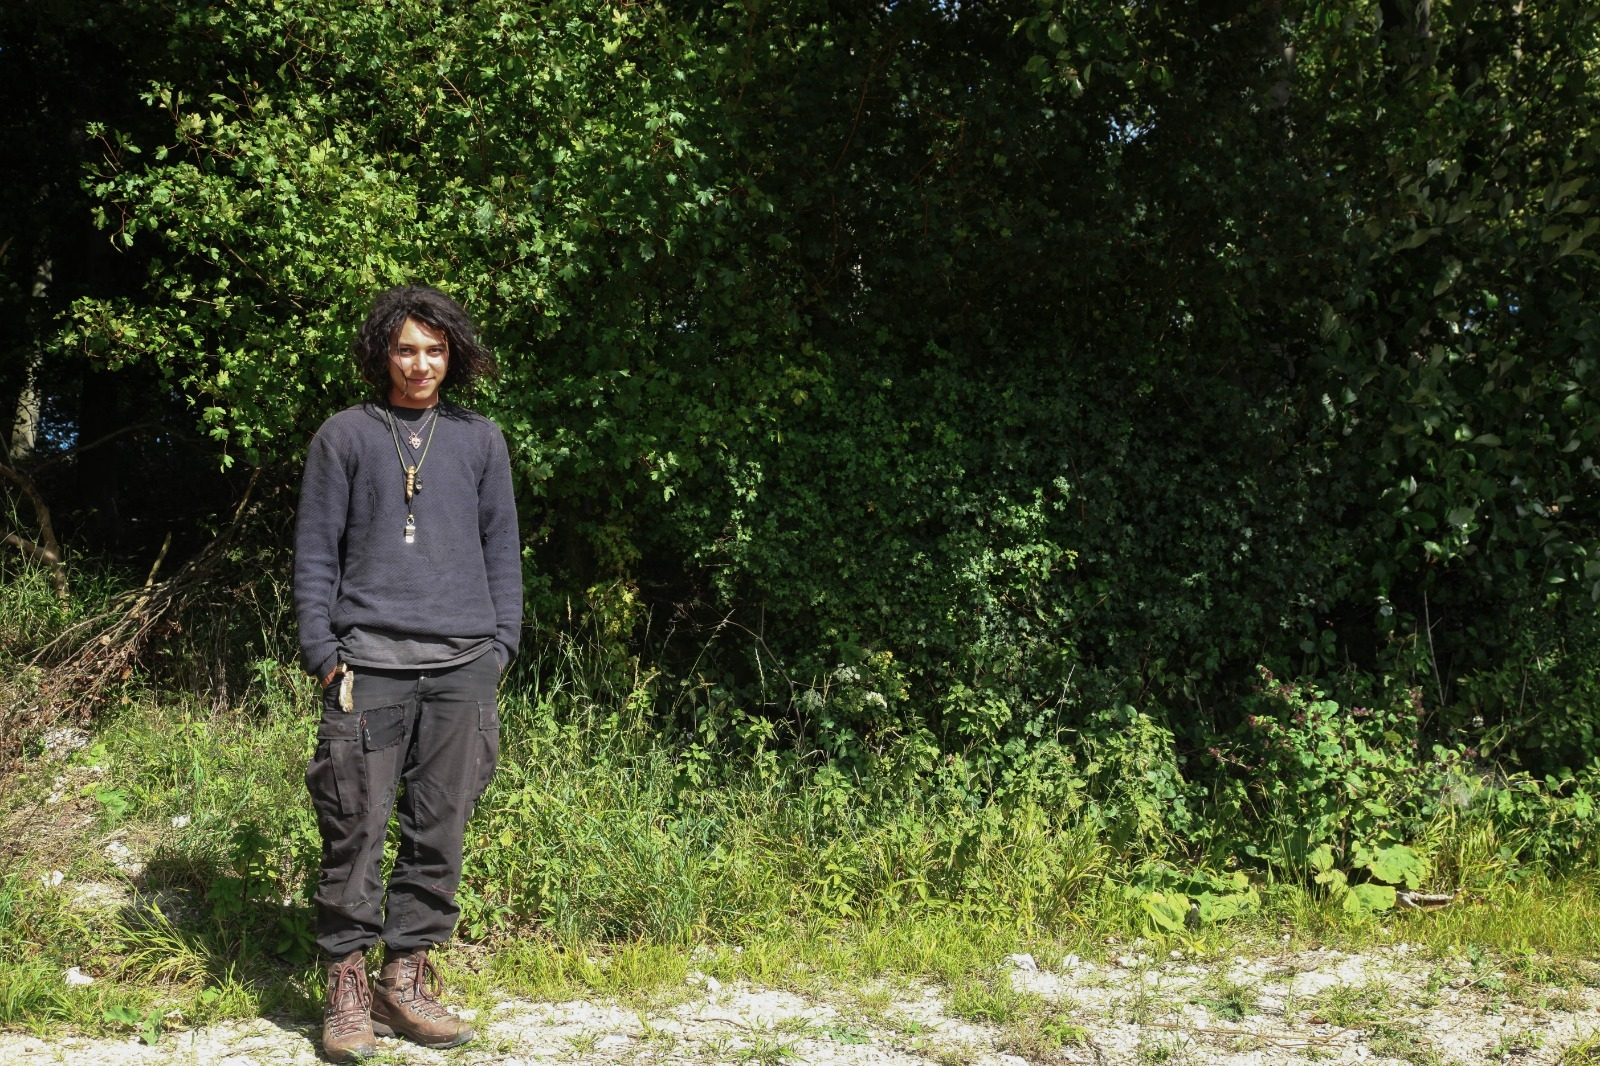 Young conscientious protector faces prison for defending ancient woodland from destruction by HS2 project